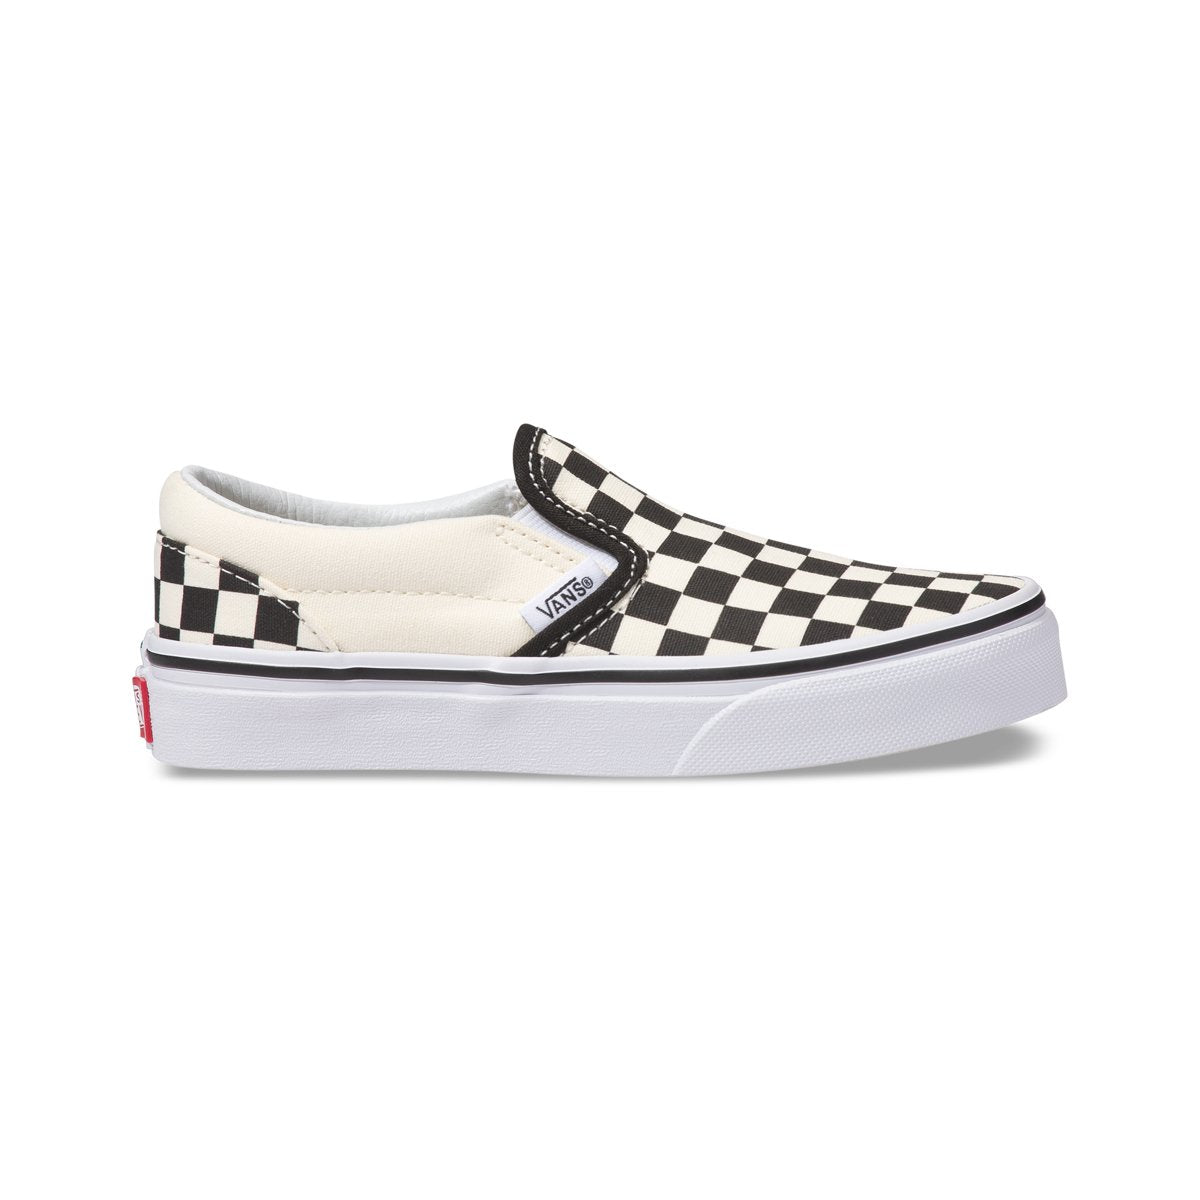 Zapatillas Vans de Ni??os Classic Slip-On - Black/White - Vans